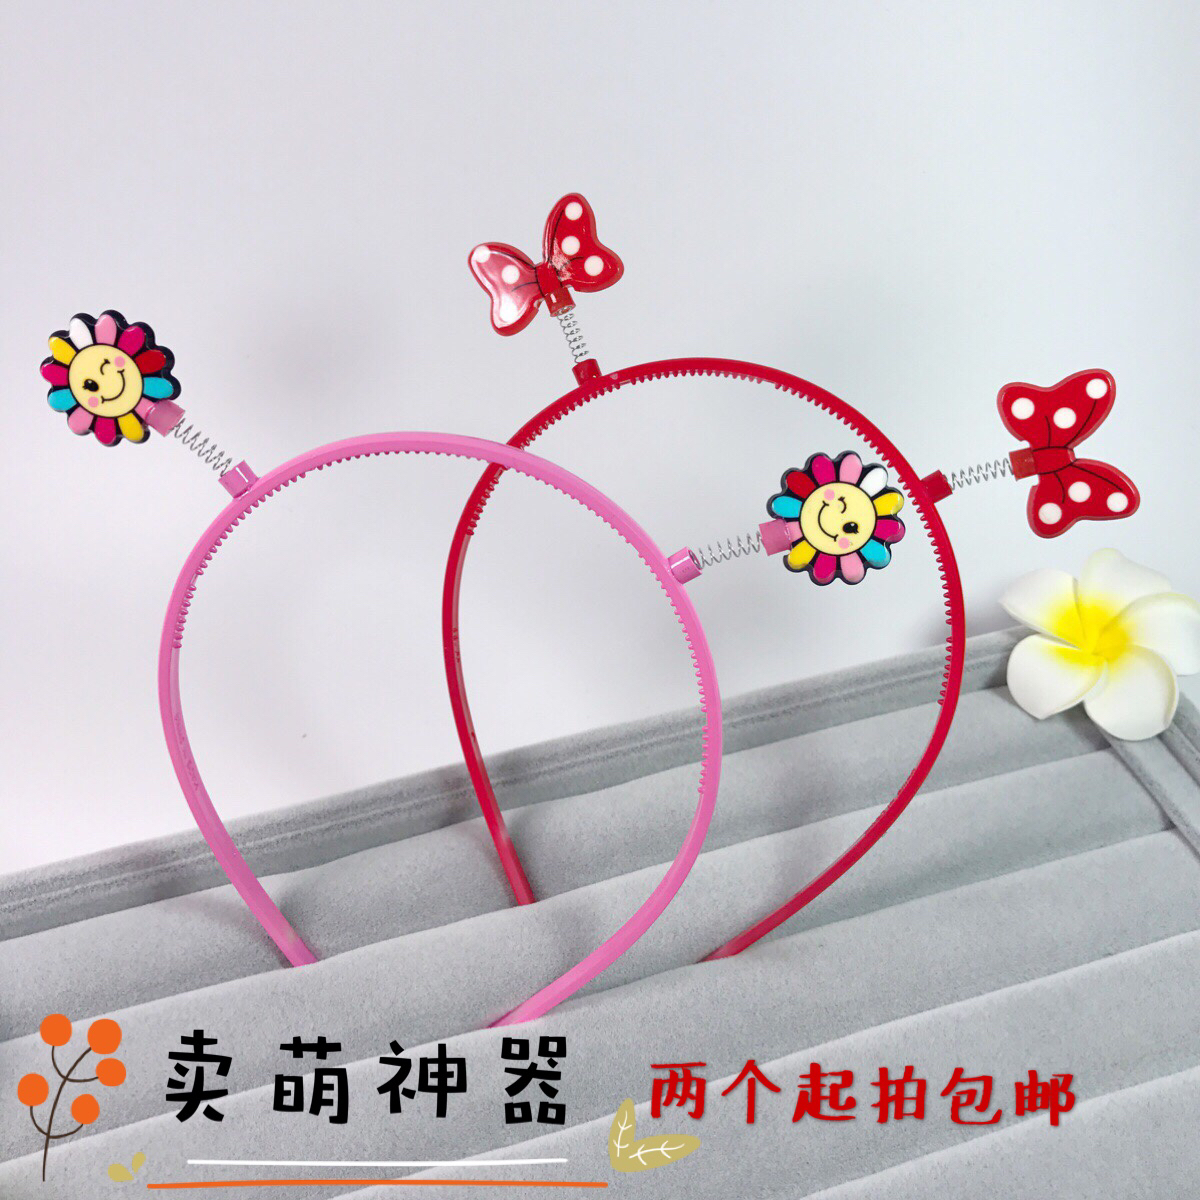 Children's hair spring hoop cartoon jewelry sell adorable artifact hairpin slip girl baby tooth headdress